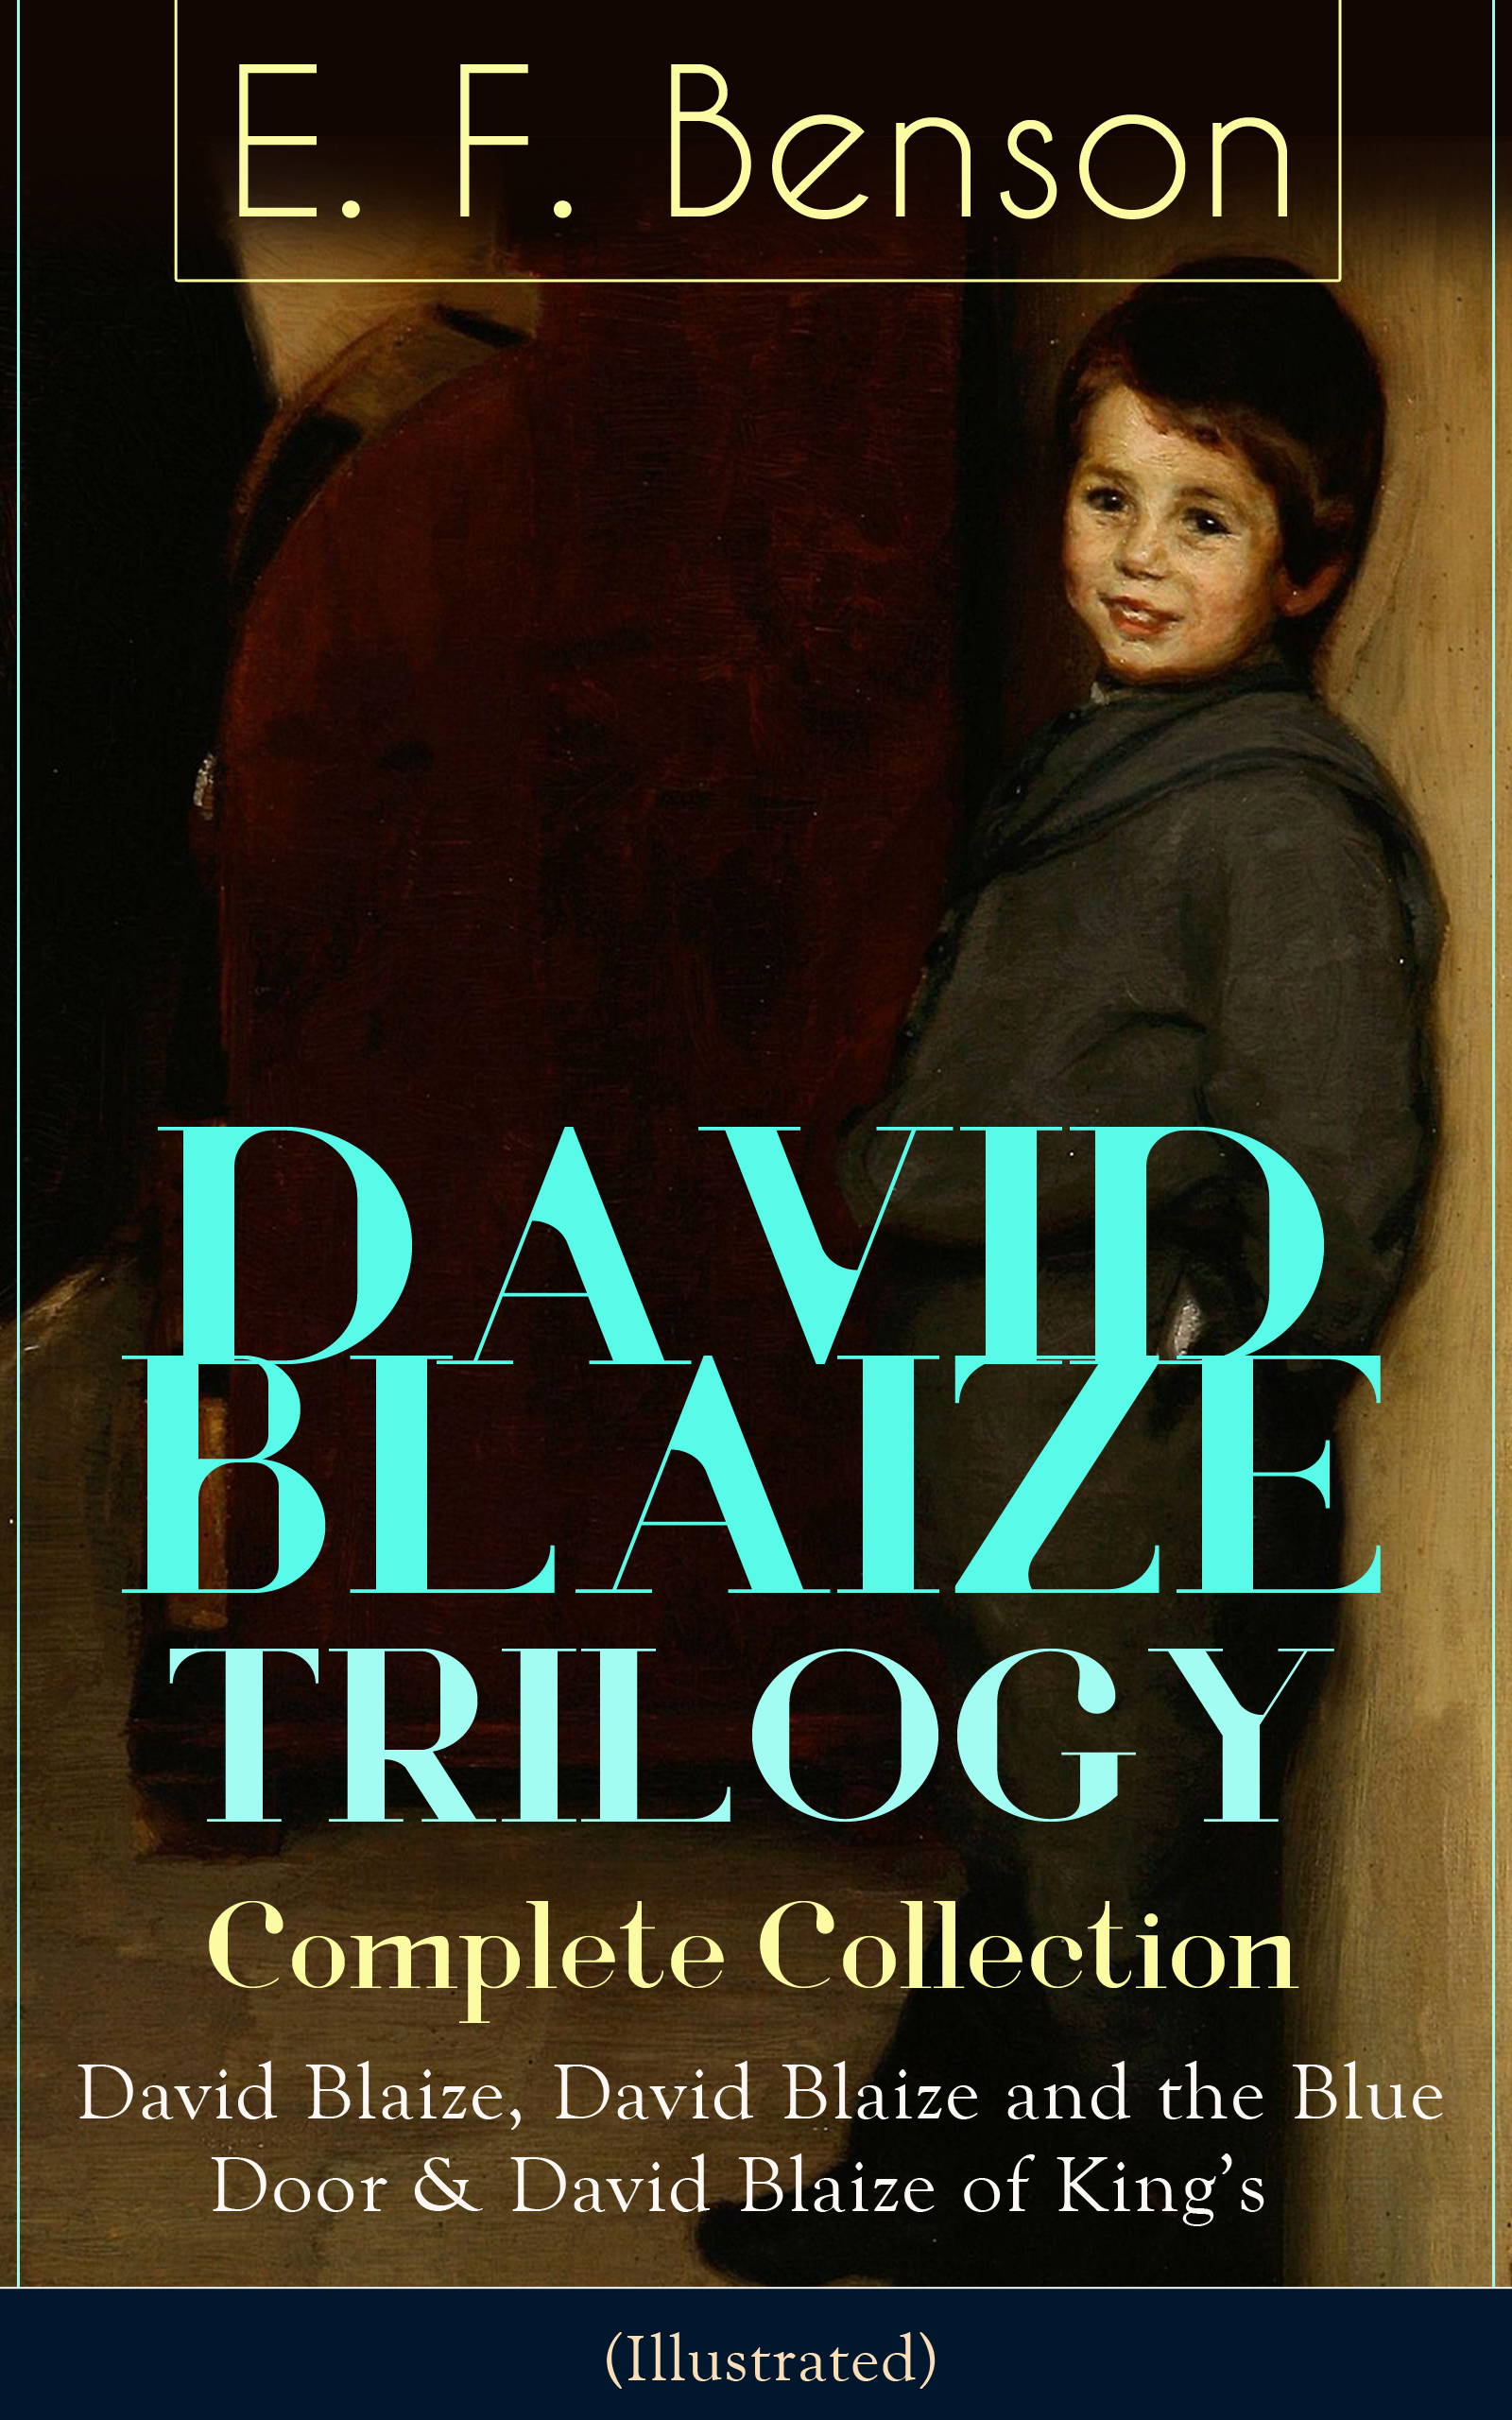 E. F. Benson DAVID BLAIZE TRILOGY - Complete Collection: David Blaize, David Blaize and the Blue Door & David Blaize of King's (Illustrated) david penny the red hill